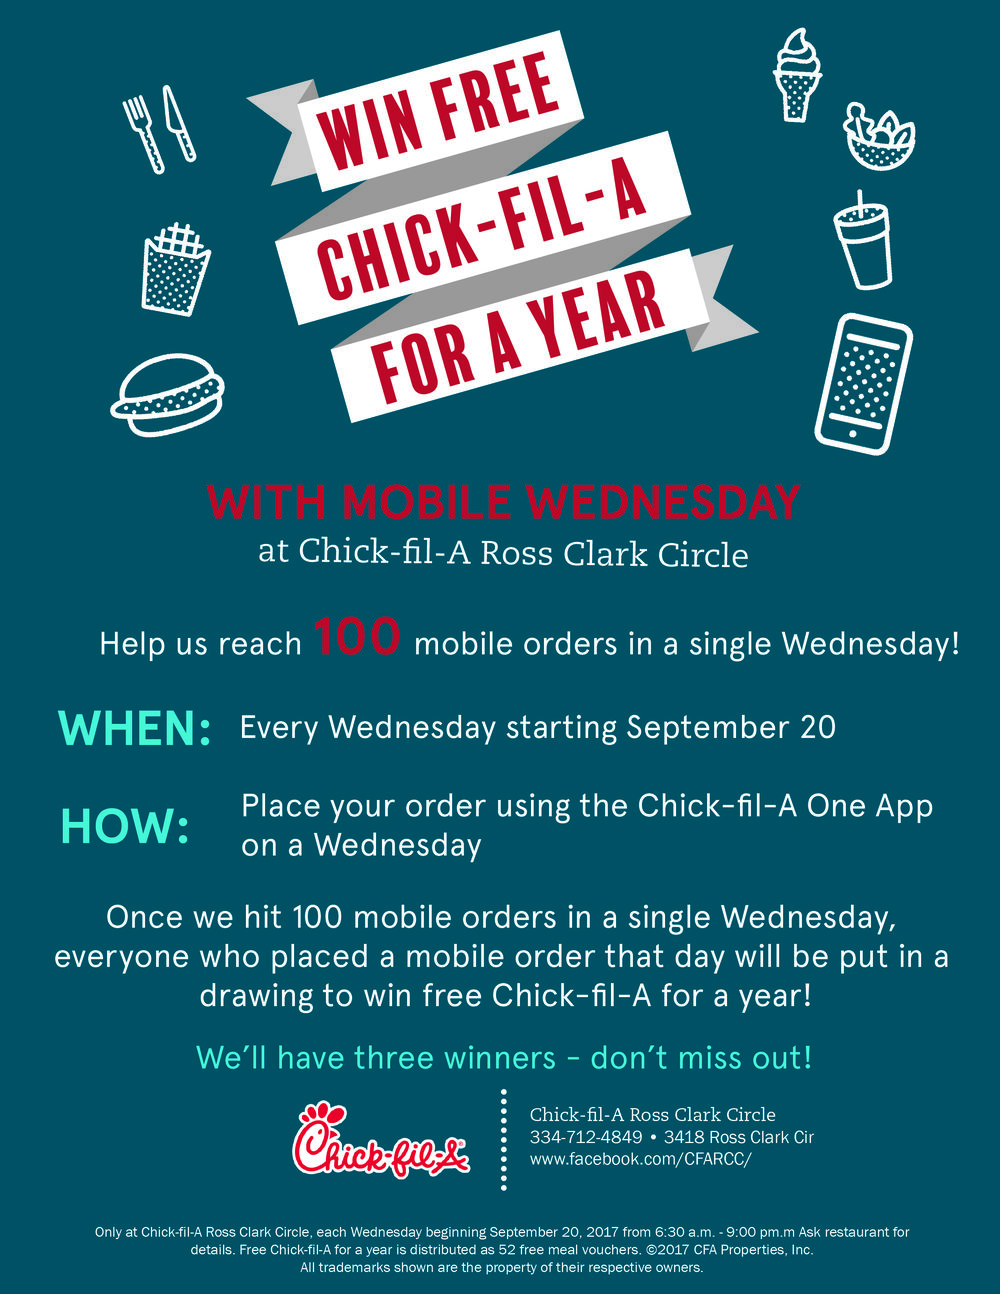 CFA_MobileWednesday_Flyer_FF-01.jpg